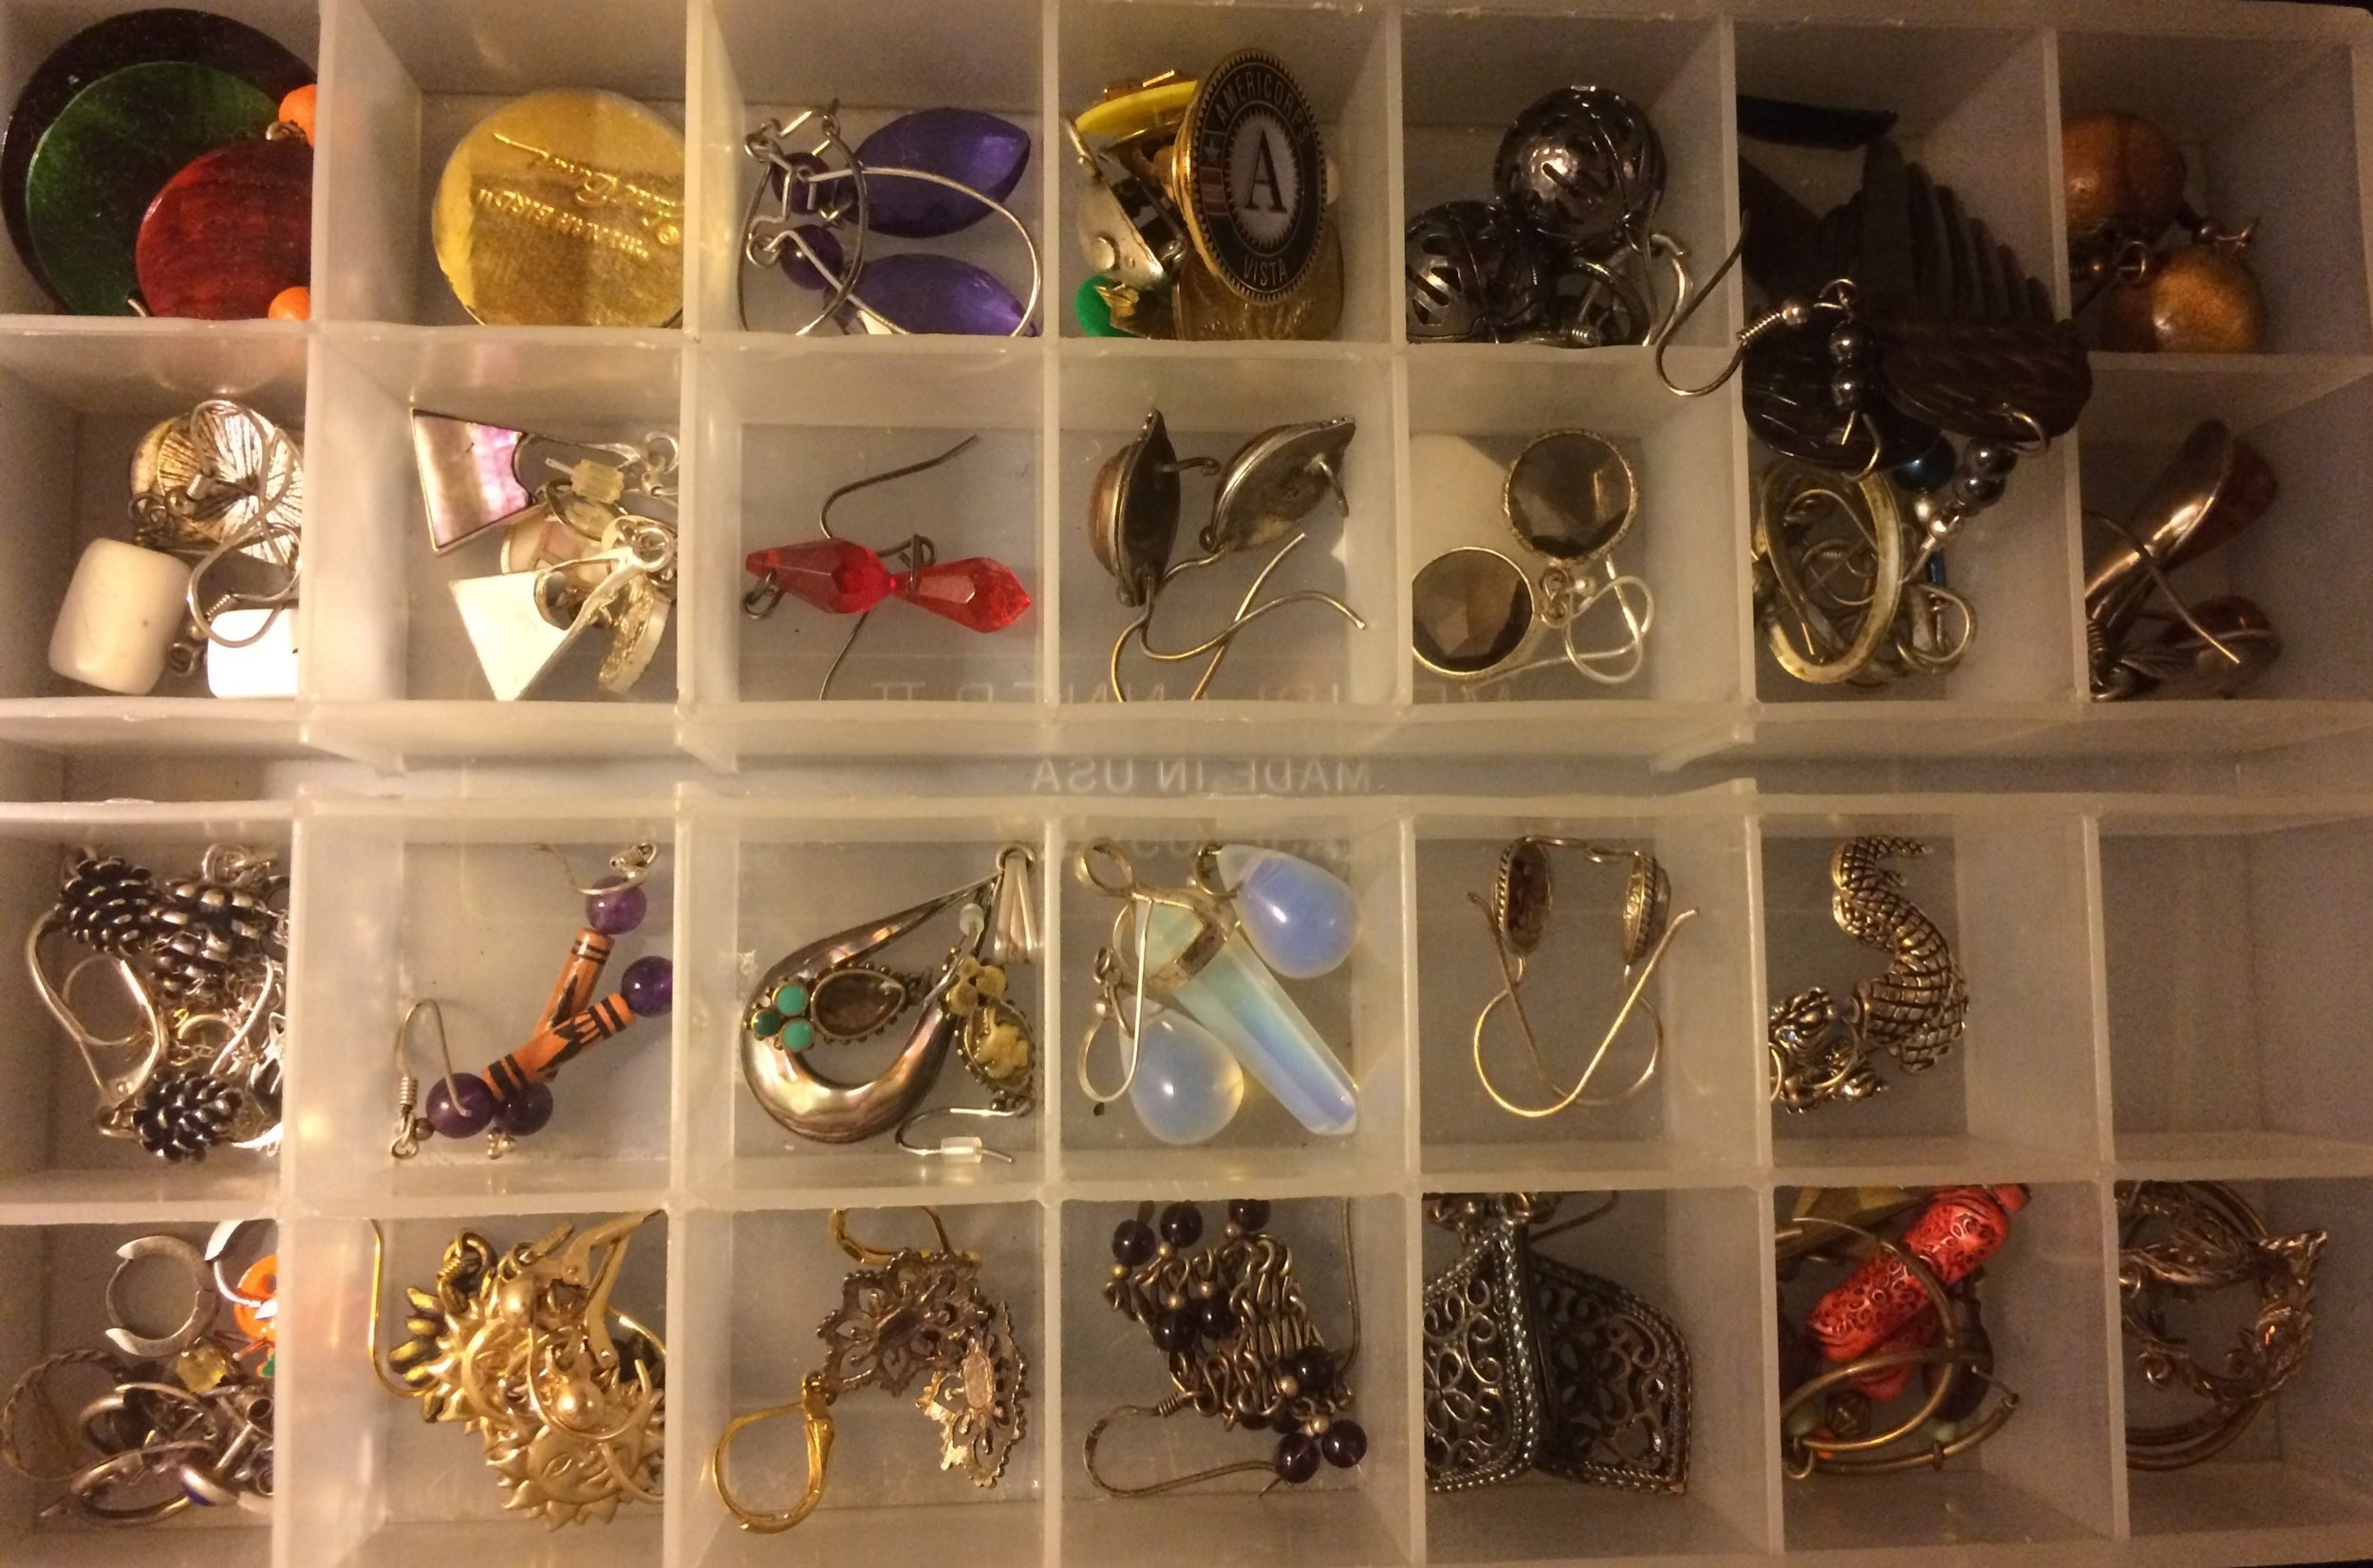 Jewelry - Everyone has their vices; I used to be a purse collector. I swapped to jewelry because it's timeless and it packs very small.Items that are out of sight tend to multiply! I'm currently building a jewelry organizer to make my collection visible. For now a thrifted monthly pill organizer works well!